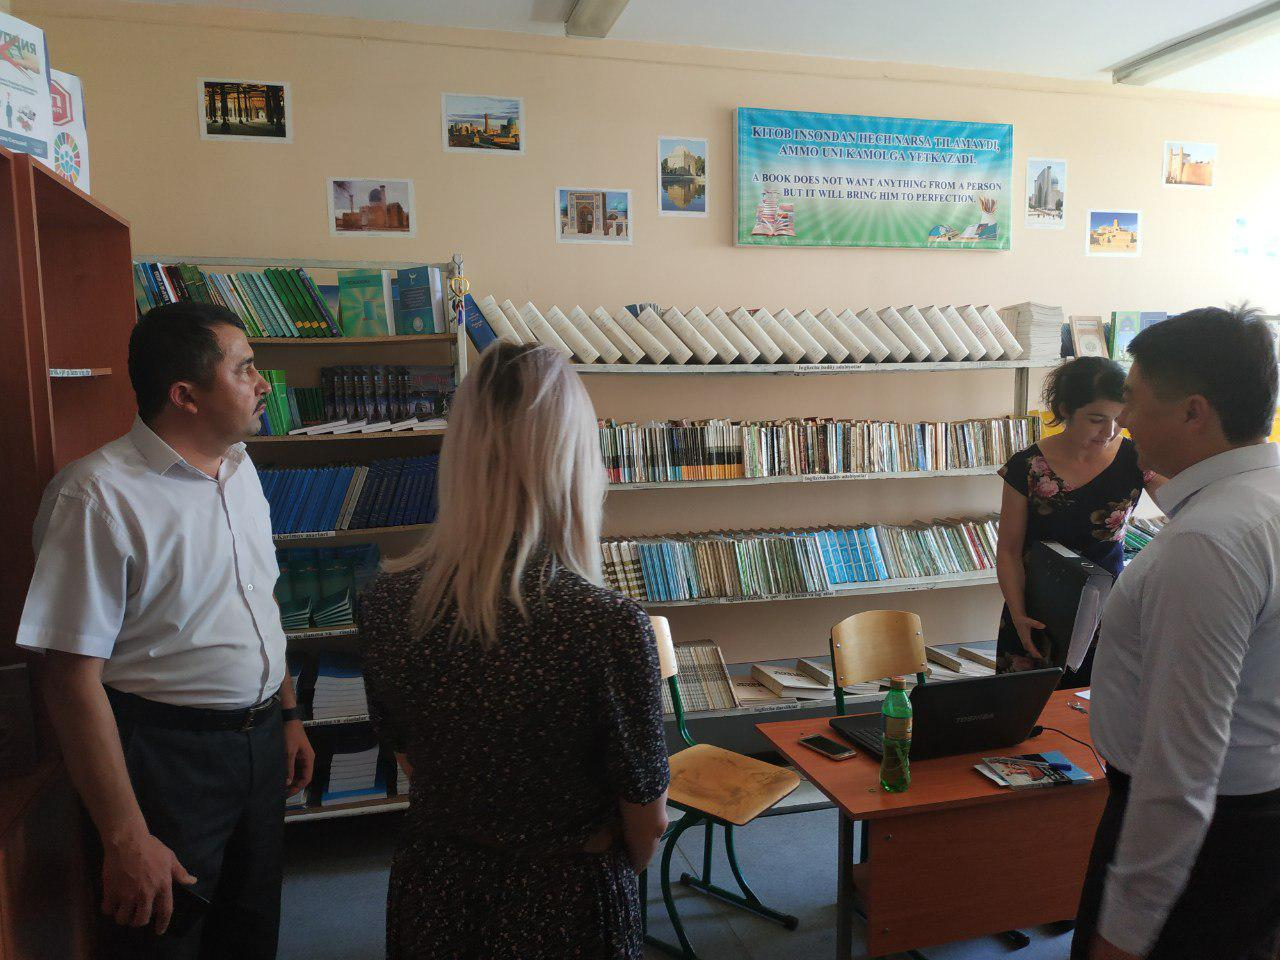 Natalya Sannikova, an assistant professor at the Department of Russian Language and Literature of Astrakhan State University, was invited to give a le